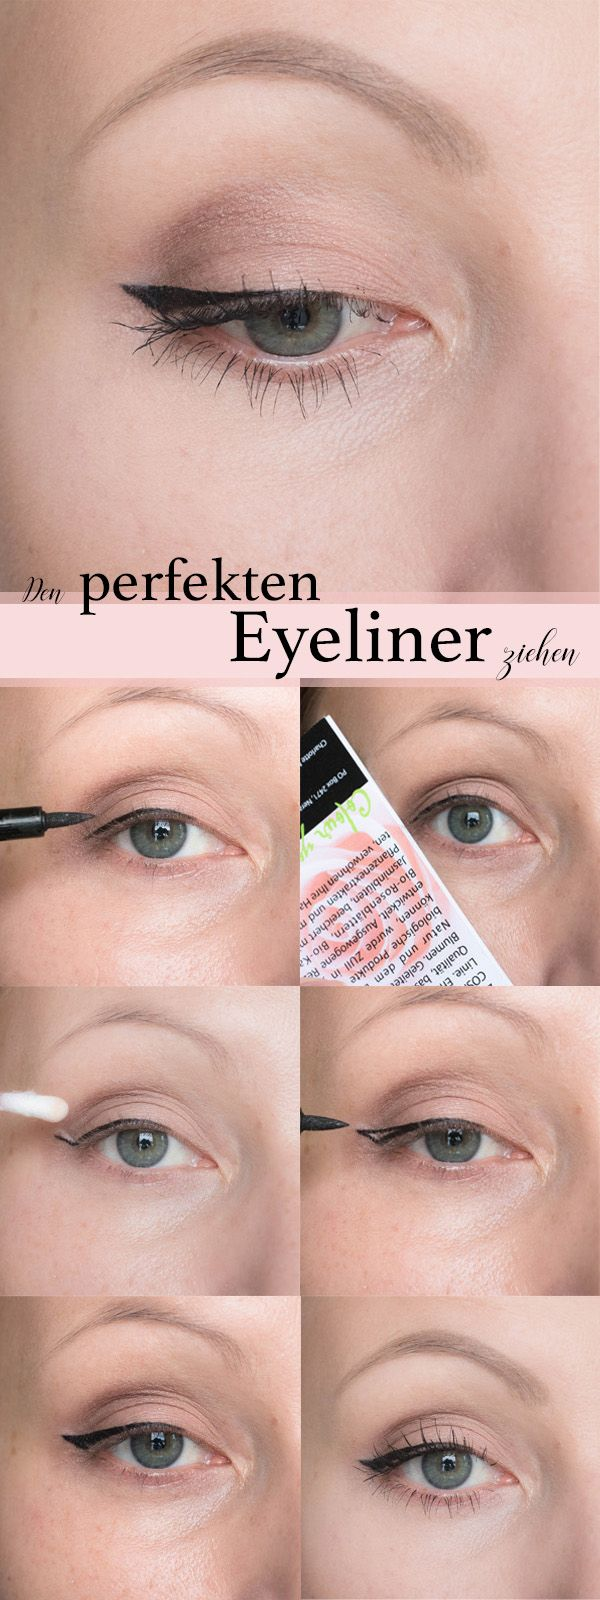 Photo of Draw the perfect eyeliner! My tips and tricks!